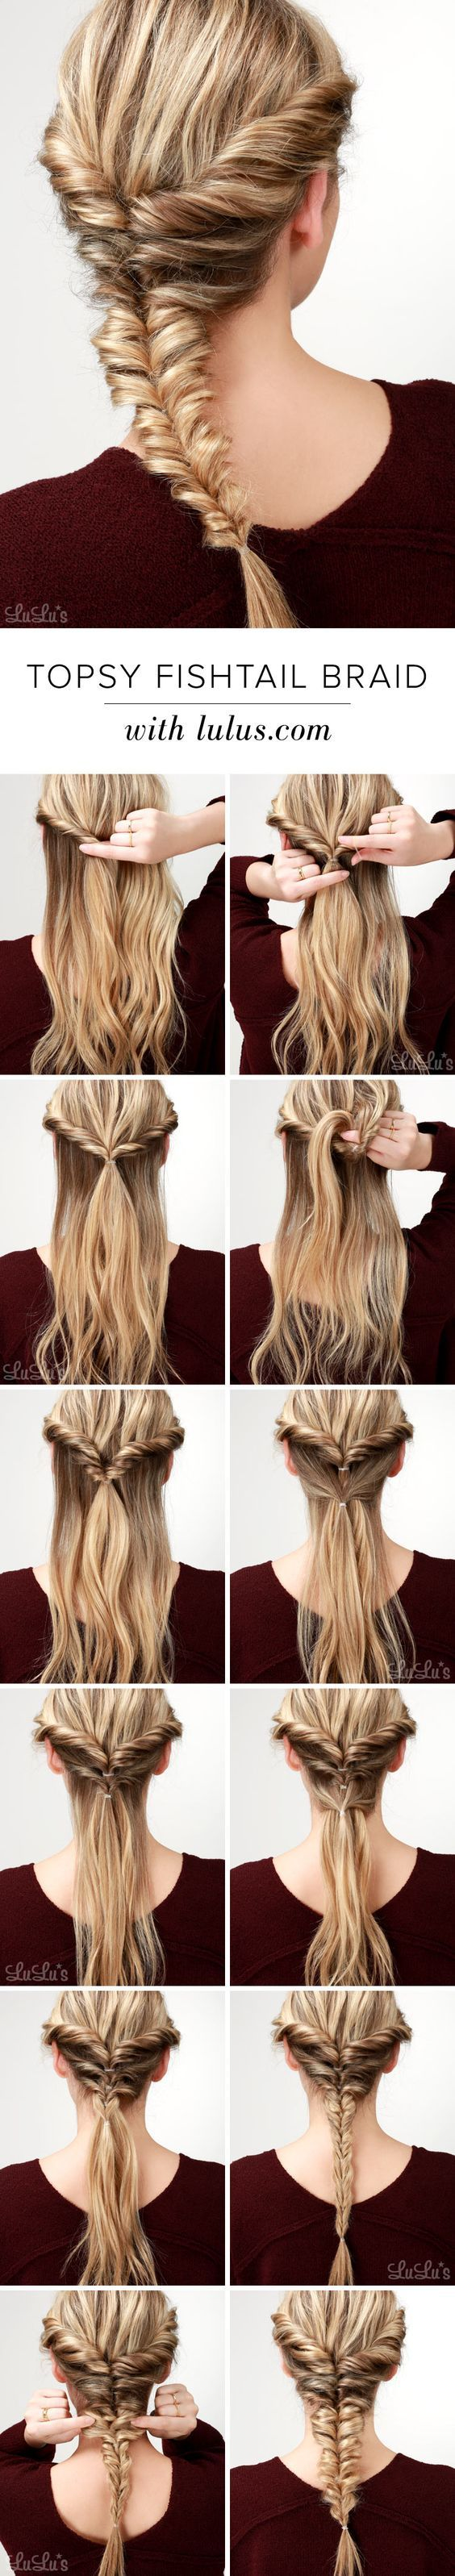 best braided hairstyles that turn heads braid hairstyles th